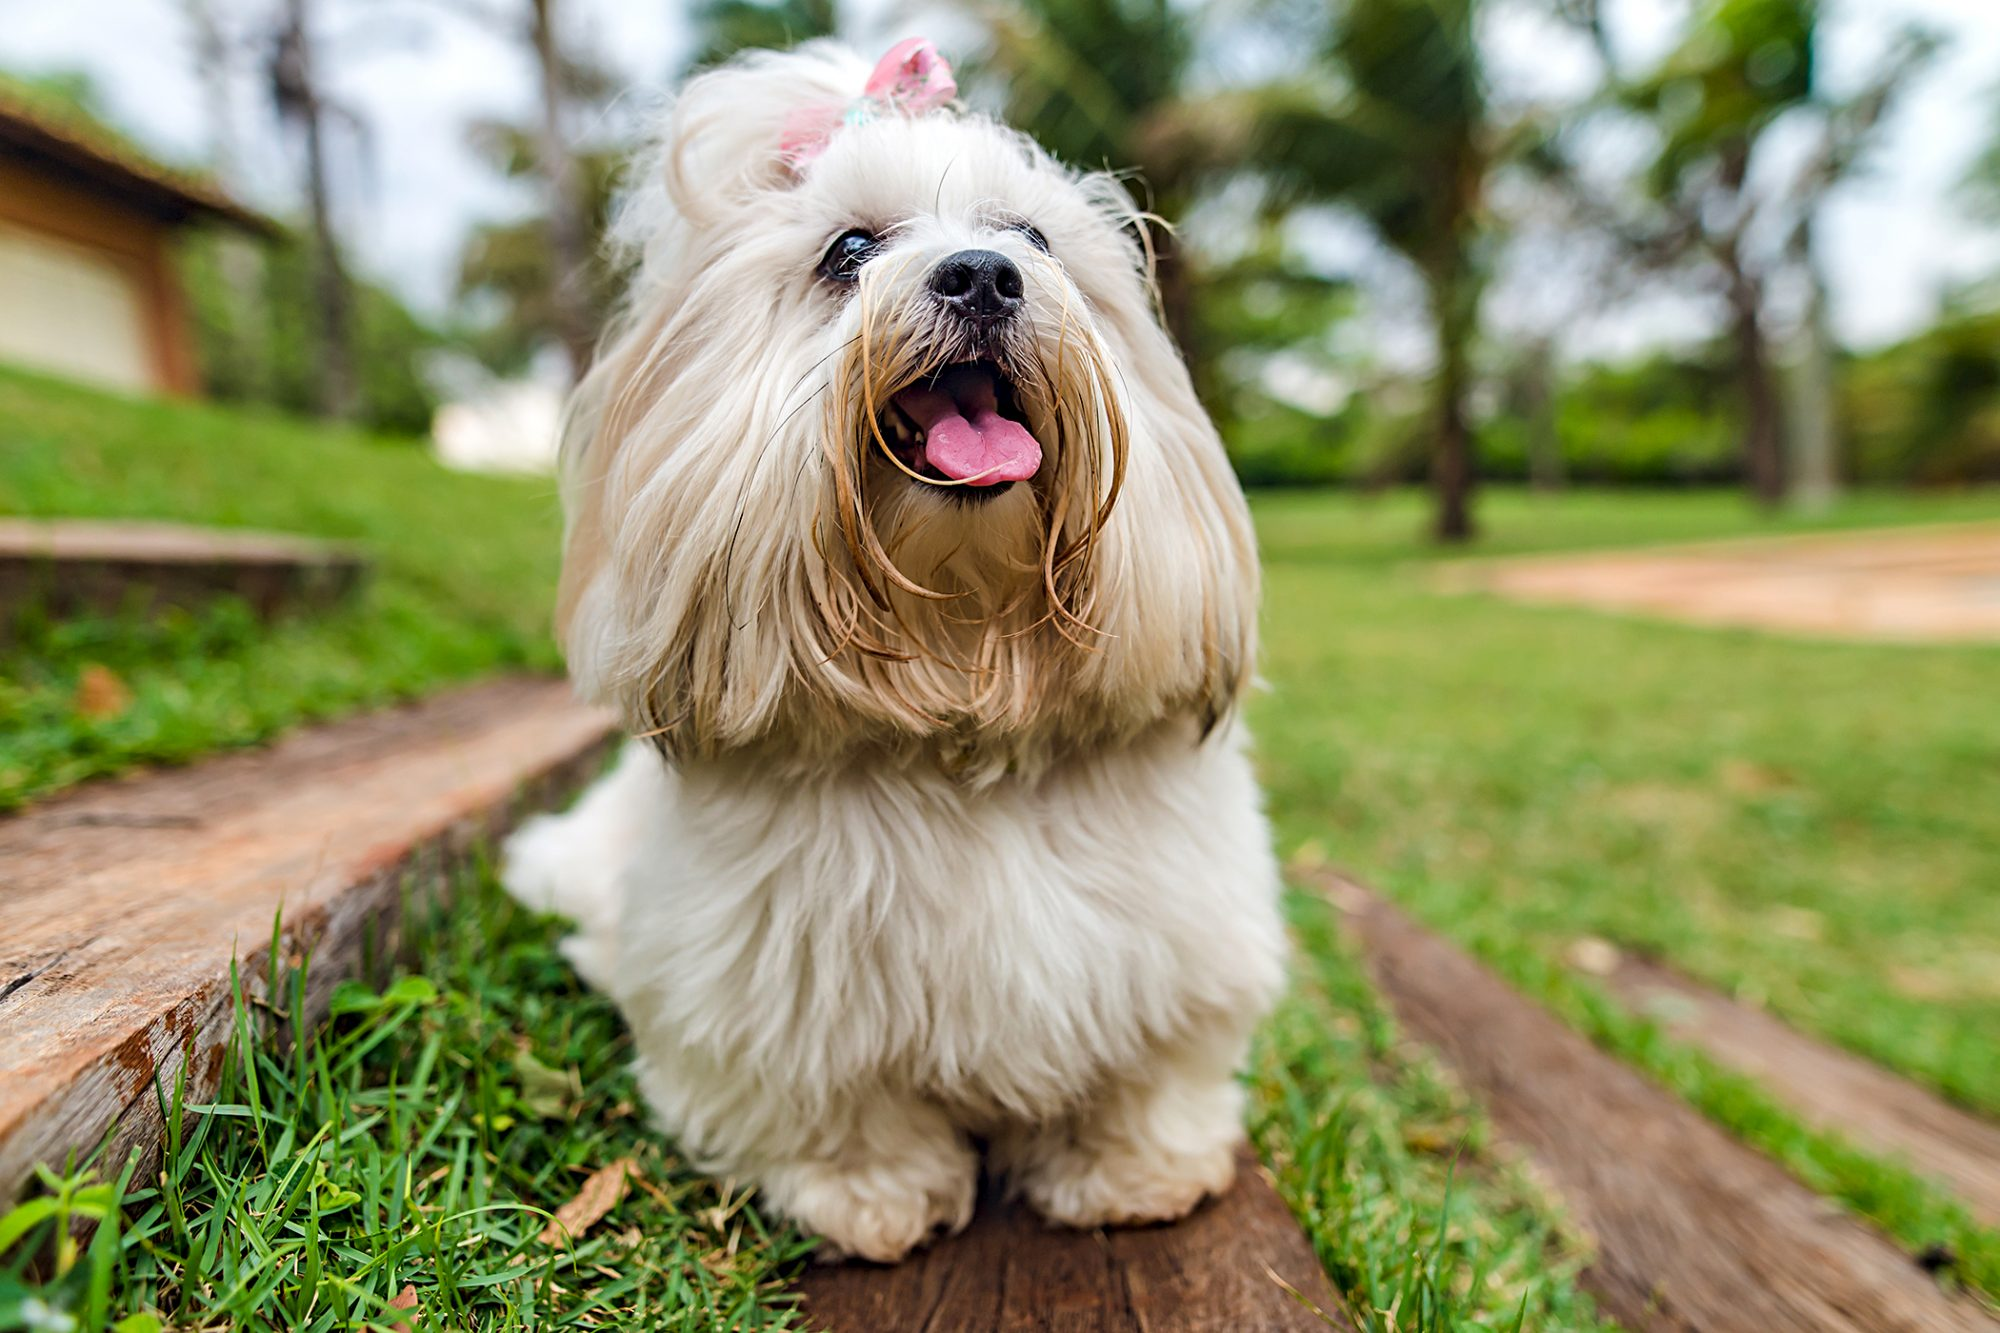 lhasa apso wearing a pink bow with its tongue out